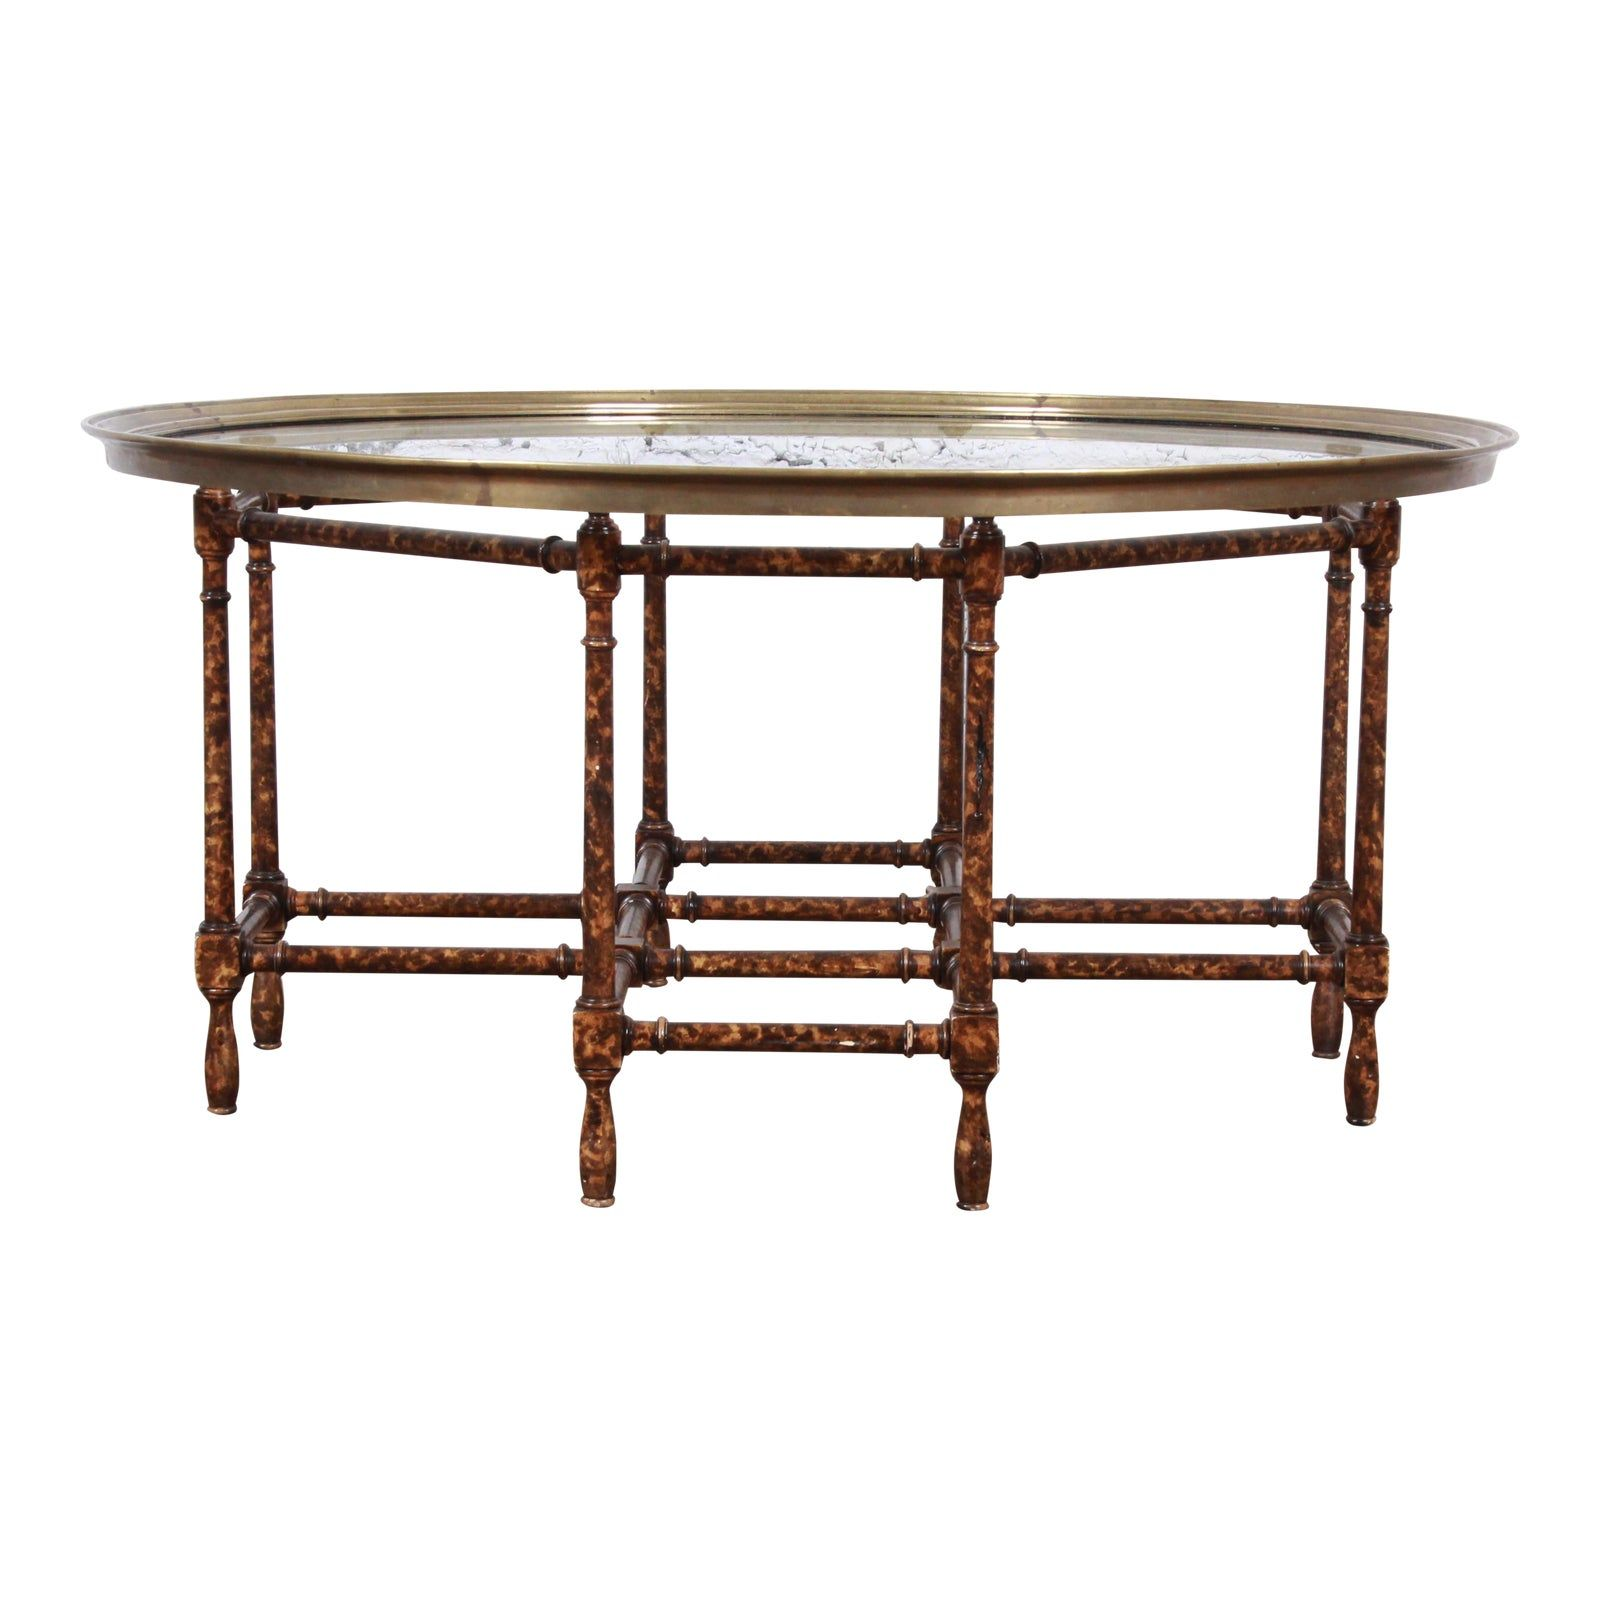 Baker Furniture Hollywood Regency Chinoiserie Faux Bamboo Cocktail Table Faux Bamboo Baker Furniture Bamboo Coffee Table [ 1600 x 1600 Pixel ]